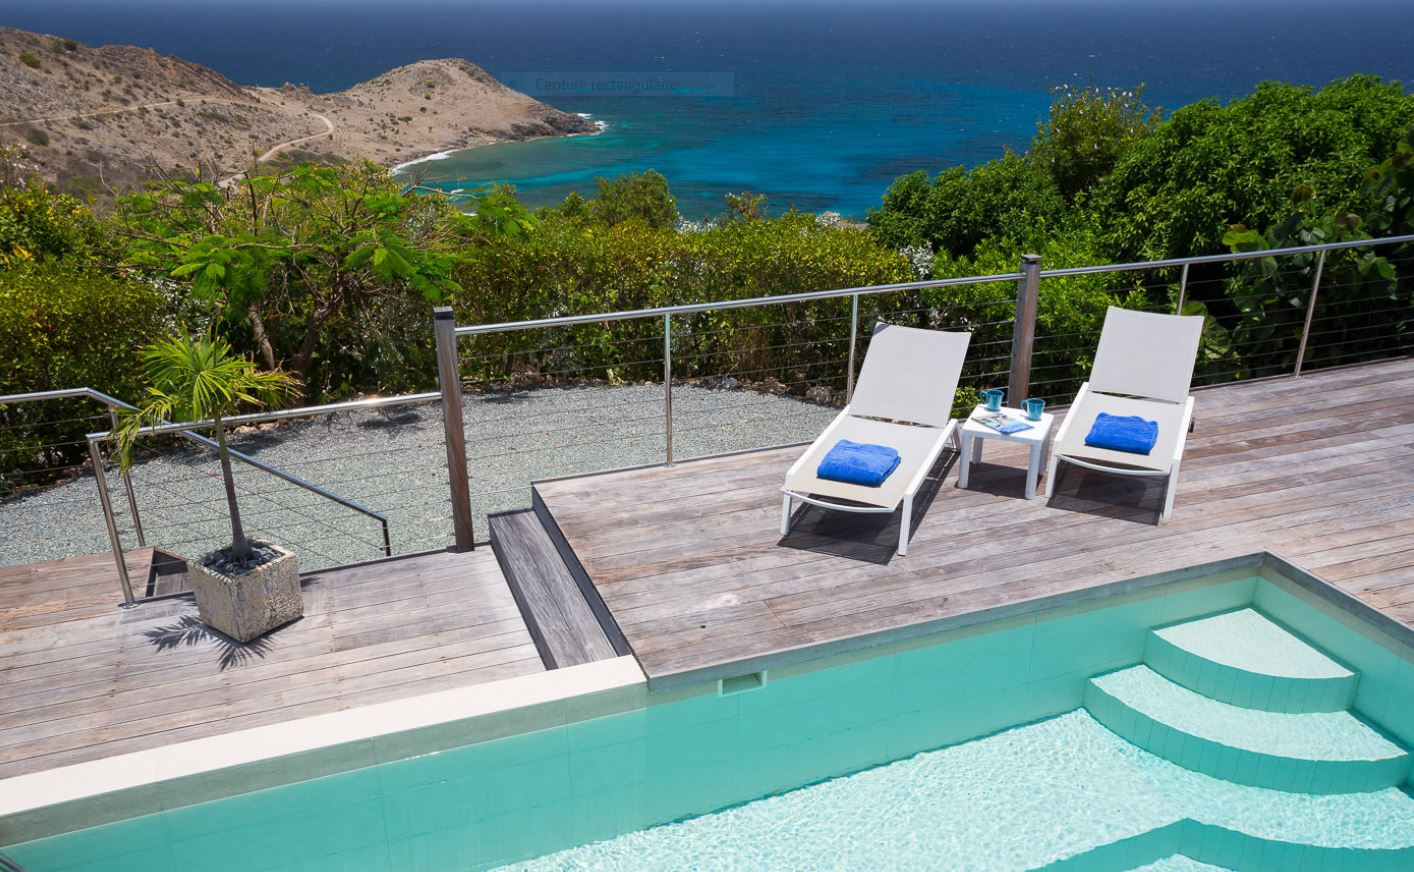 Seaview St Barts Luxury Villa Vacation Rentals with private pool - Devet - FWI